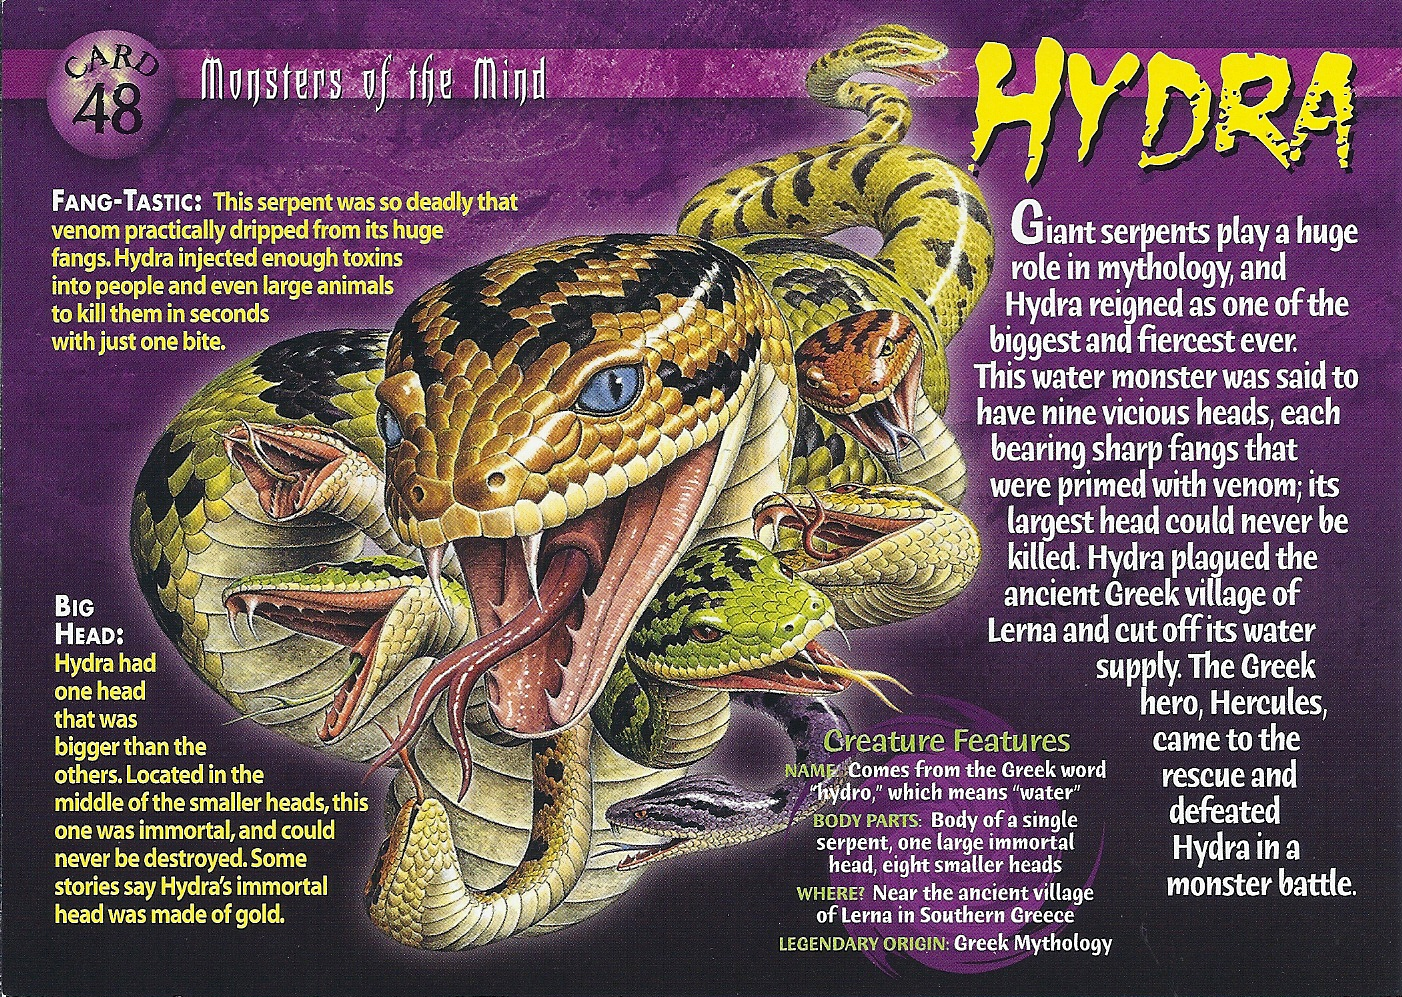 Hydra Monster Wiki Hydra Monsters of The Mind